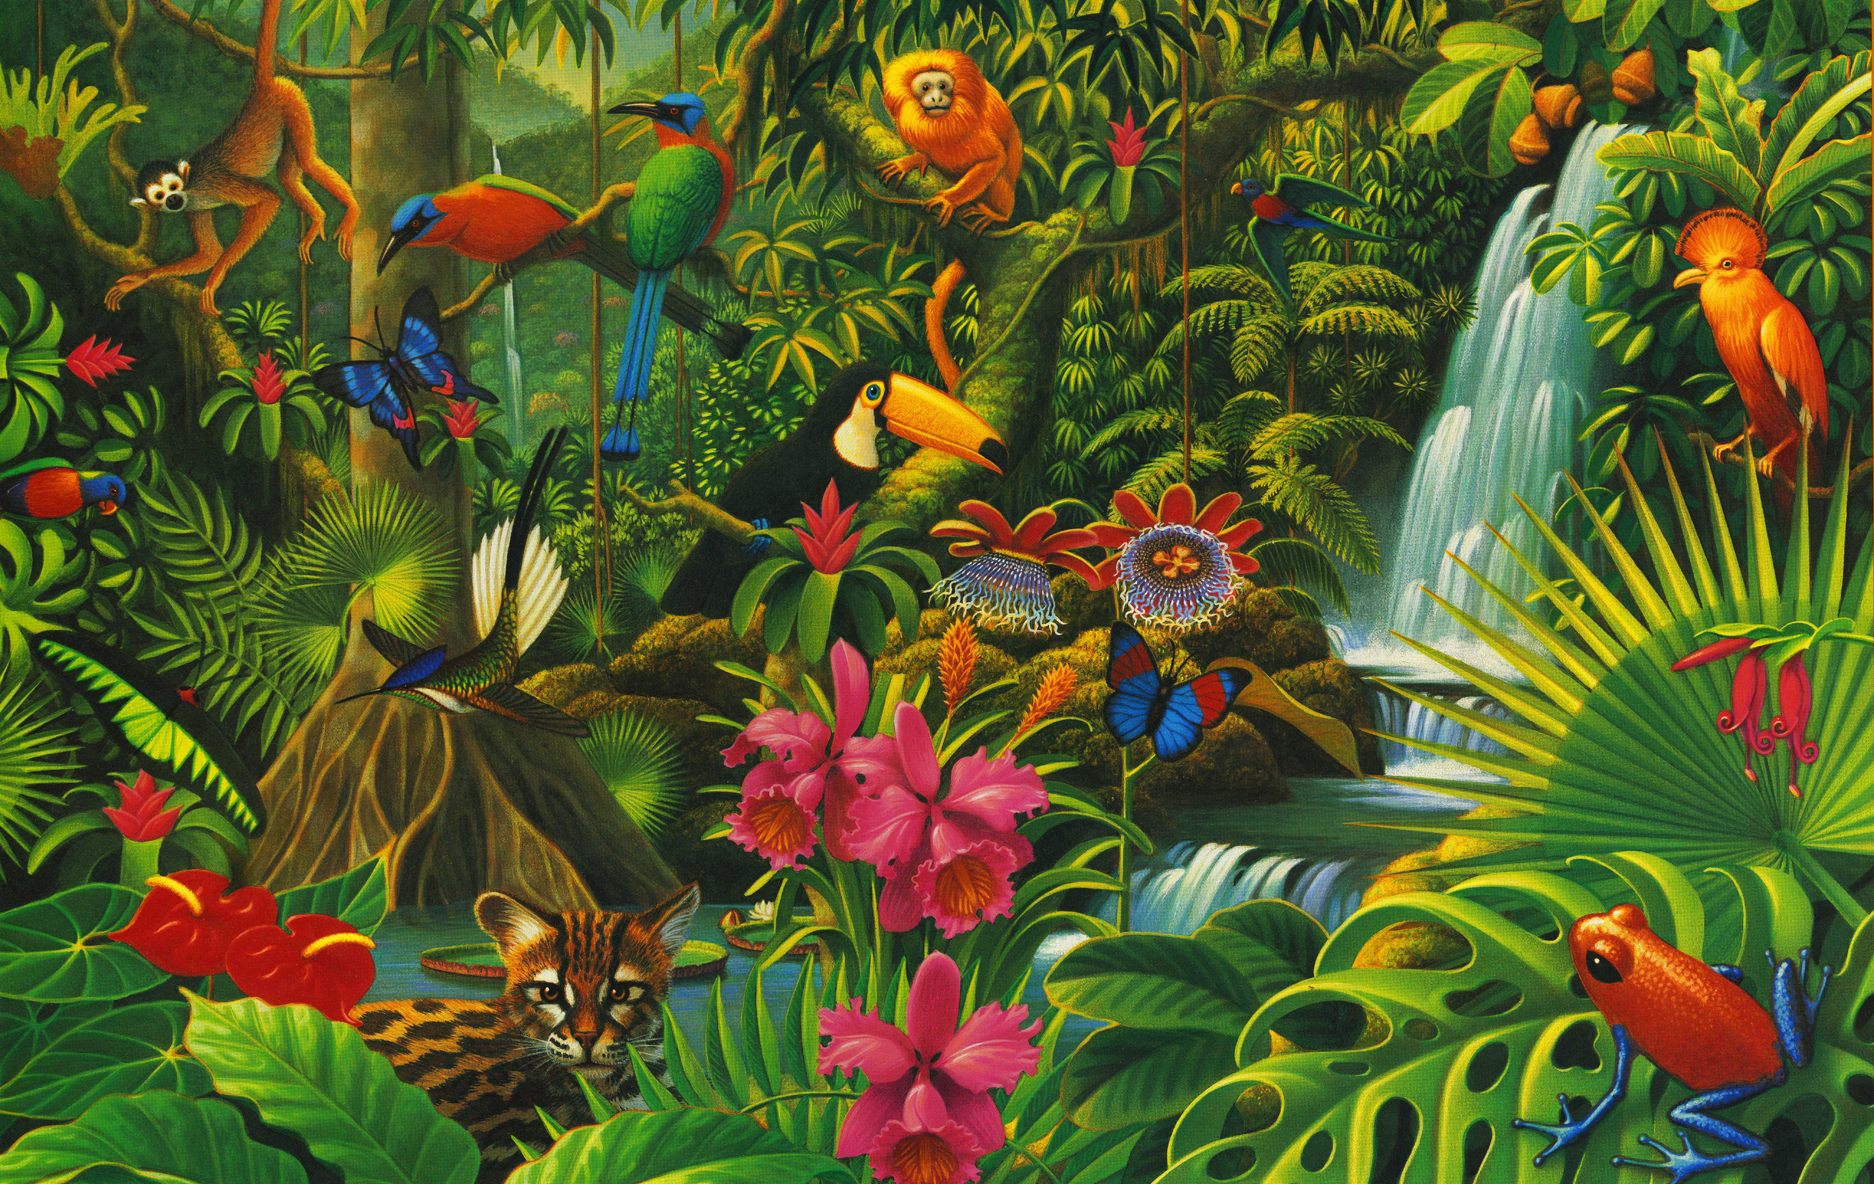 lelandklanderman-rainforest.jpg